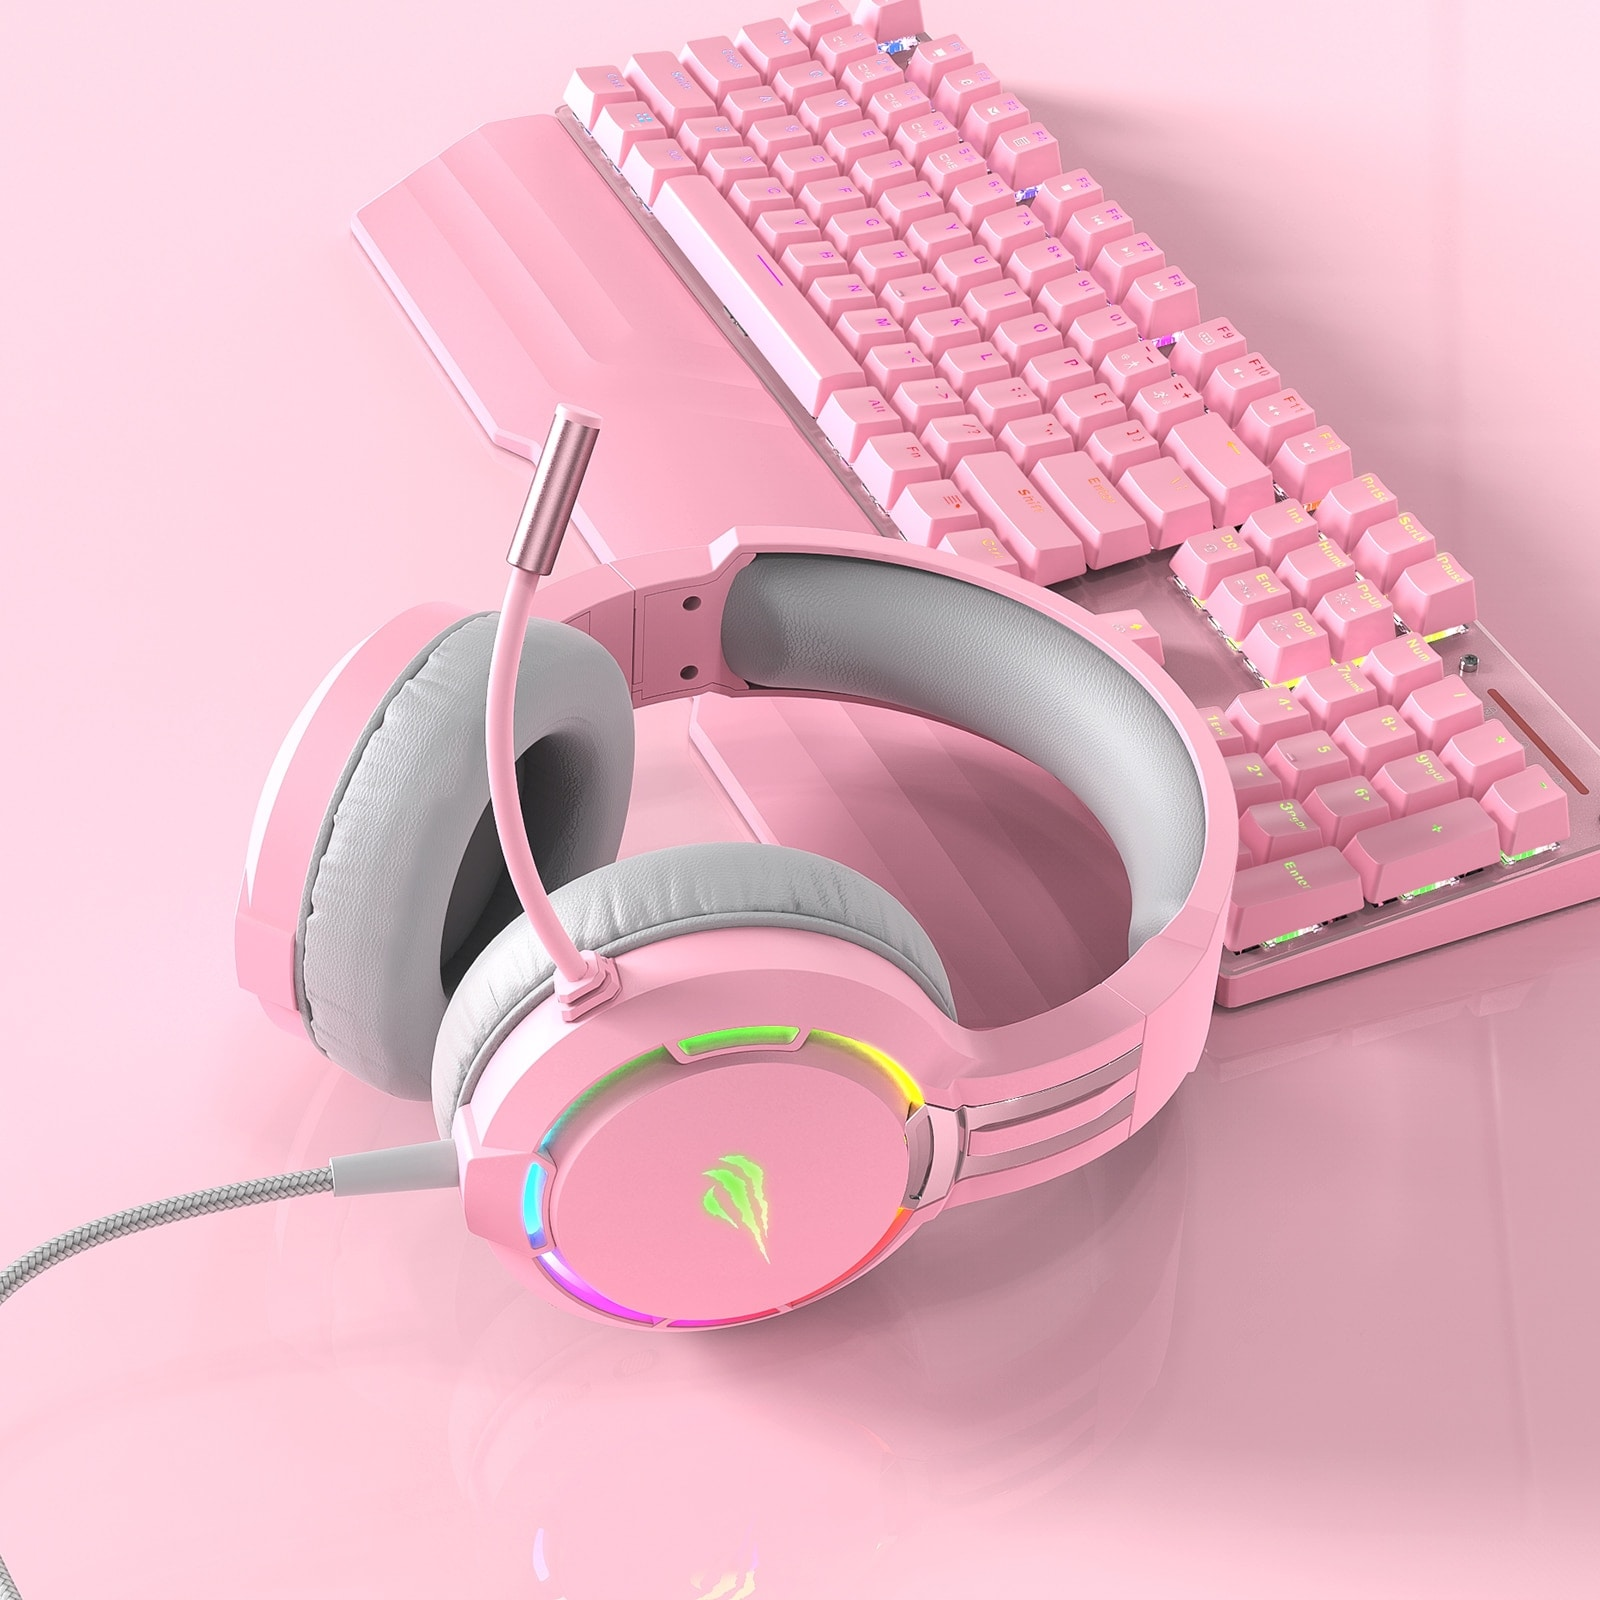 Havit Professional RGB Headset With Mic Switch for Computer, PS4, Xbox, phone Pink - 5